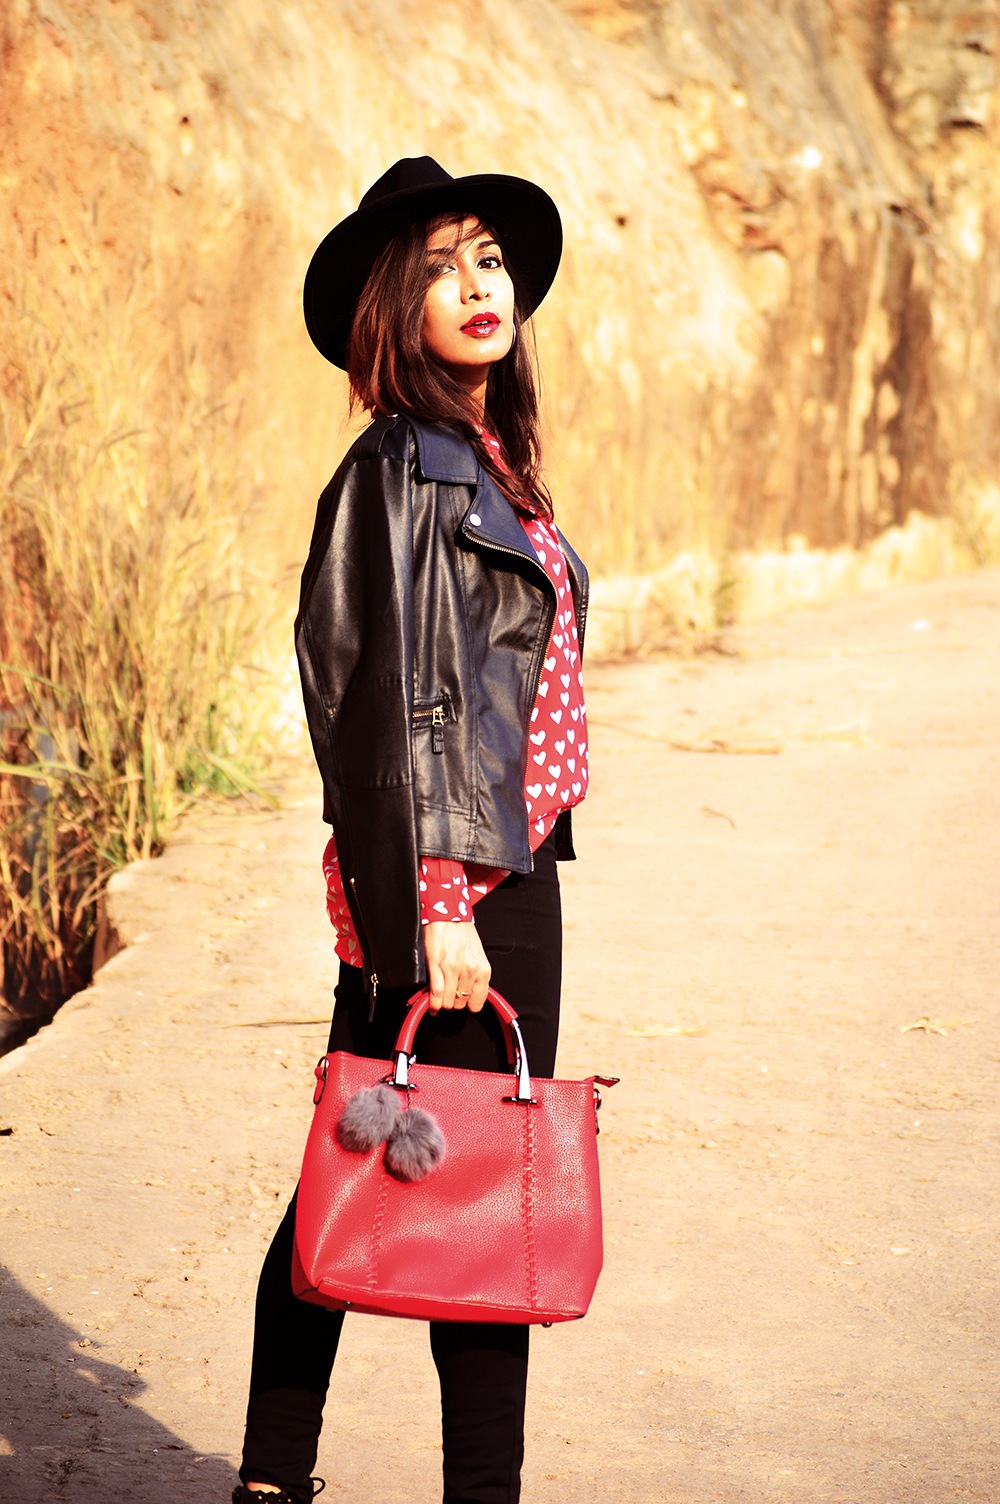 Fashion, Style, Heart Print, Indian Fashion Blogger, Street Style, Beauty, Biker Jacket, Fashion Photography-3